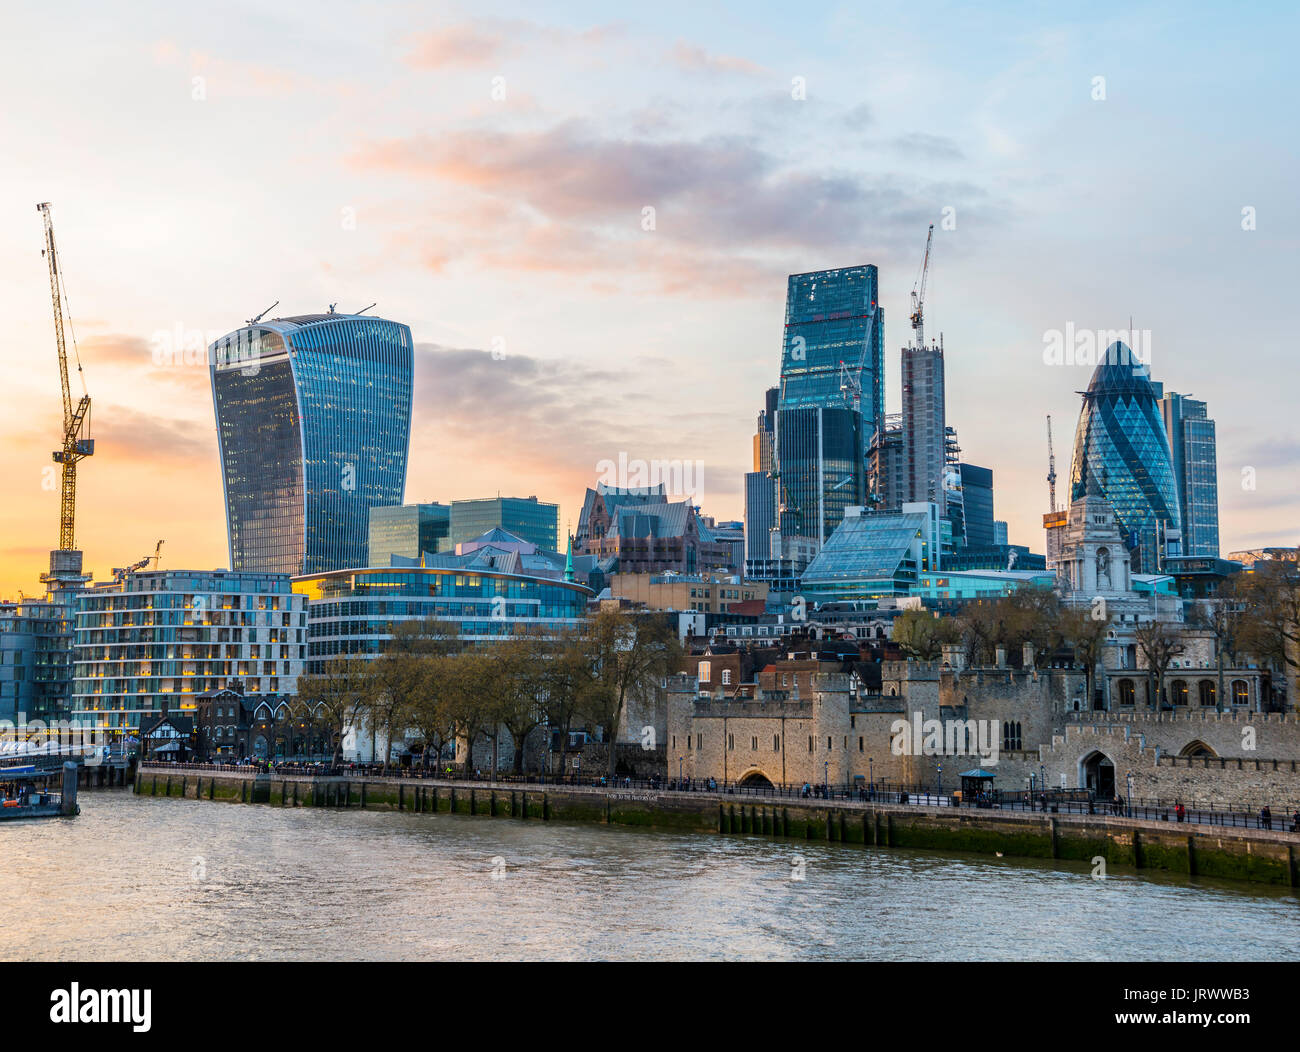 Thames, Tower of London, skyline of the City of London, with the buildings Gherkin, Leadenhall Building and Walkie - Stock Image